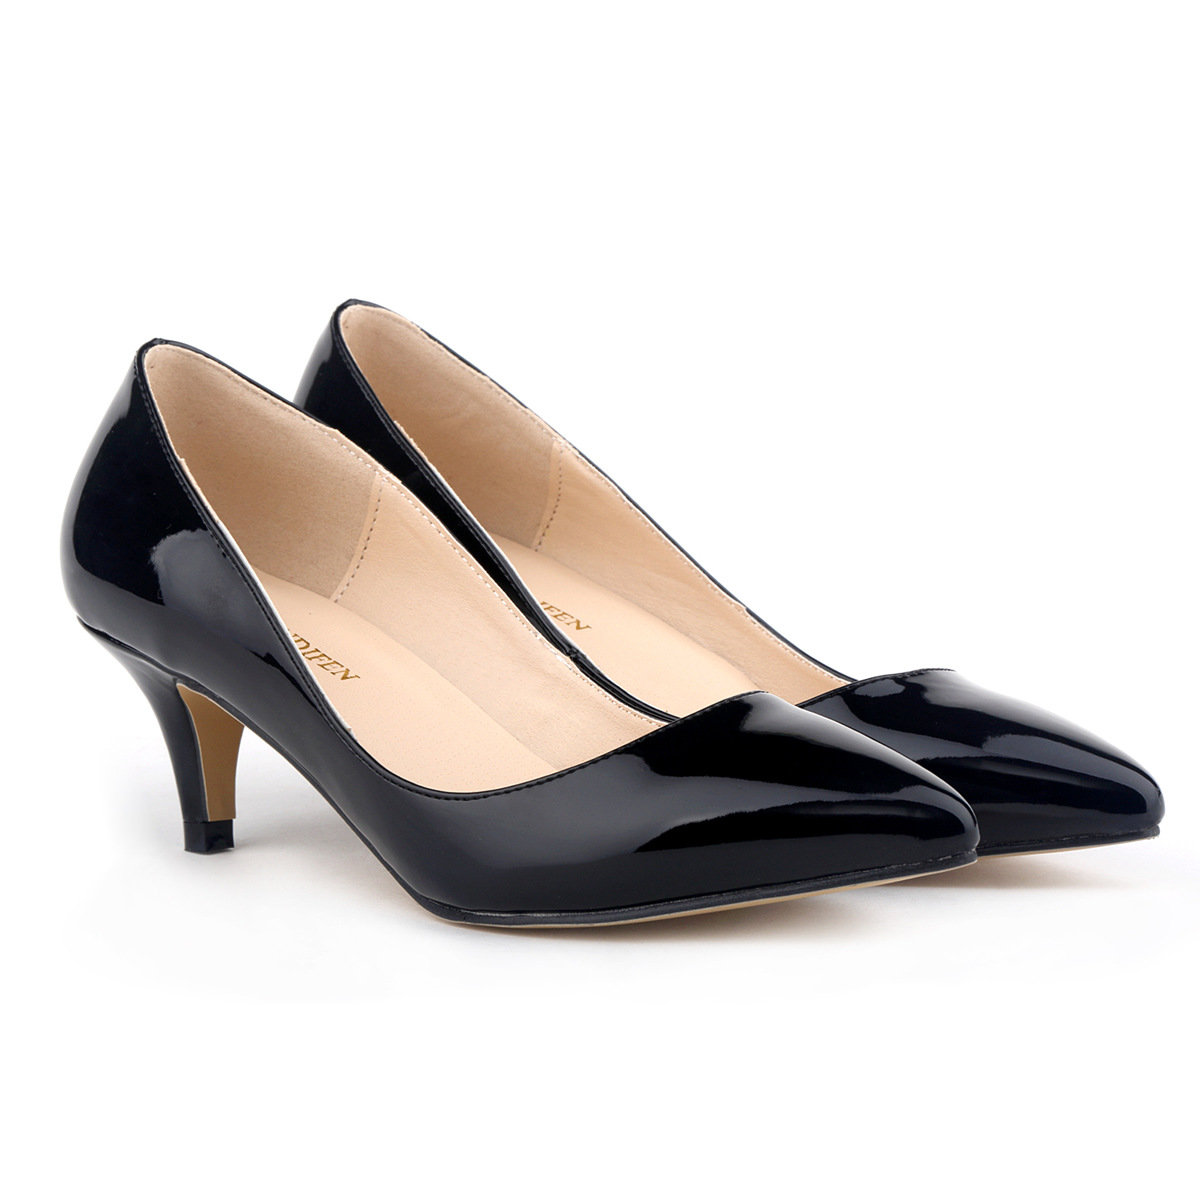 Forever Classic 3 CM High Heels Pumps For Women, Lady's Pointed Toe Thin Heels Shoes,Black/Apricot/Red,Size35 42 low heel